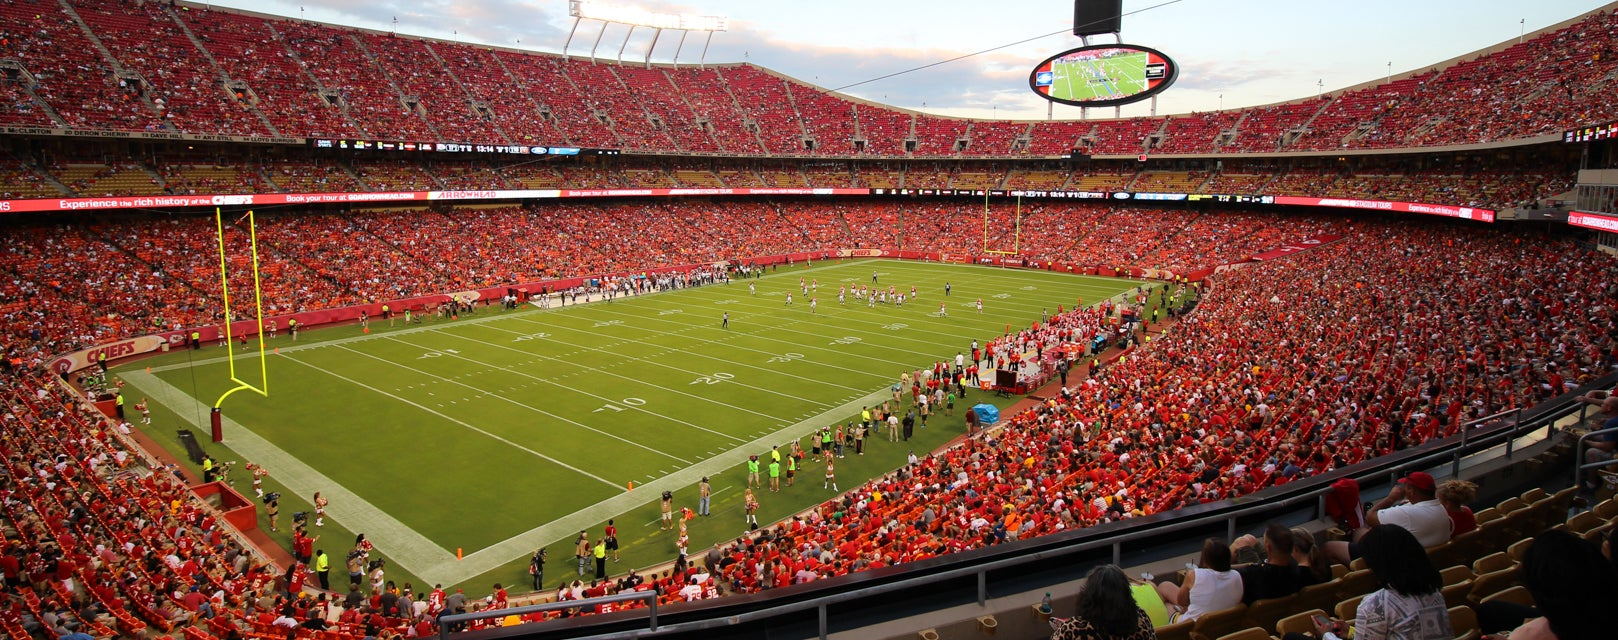 Seat view from Club Red Zone